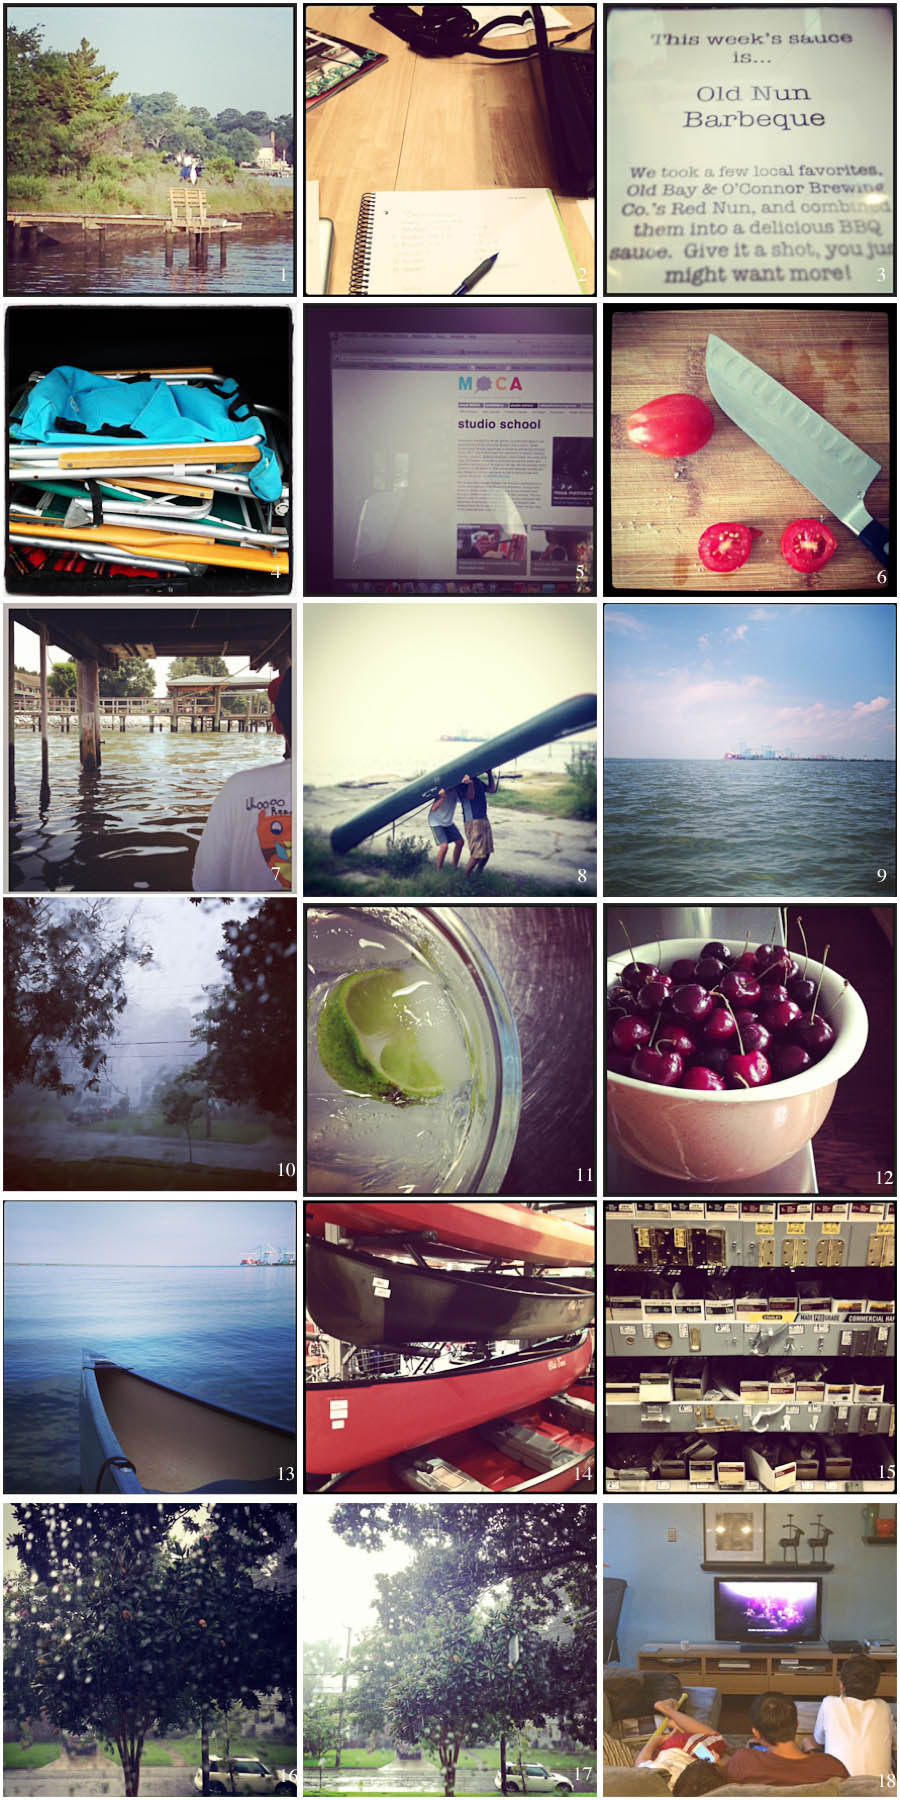 1. Morning Walk | 2. Brainstorming Session | 3. Cal's Choice for dinner | 4. Beach life | 5. Exciting autumn ahead | 6. Harvest | 7. Slow-paddle Sunday | 8. Portgage lessons | 9. My river | 10. Big Storm | 11. Sampling BSE | 12. Sunday morning cherries | 13. Morning paddle | 15. I guess we're in the market for a canoe | 16. Hardware | 17. Summer storm | 18. Sun Storm | 19. Happy together